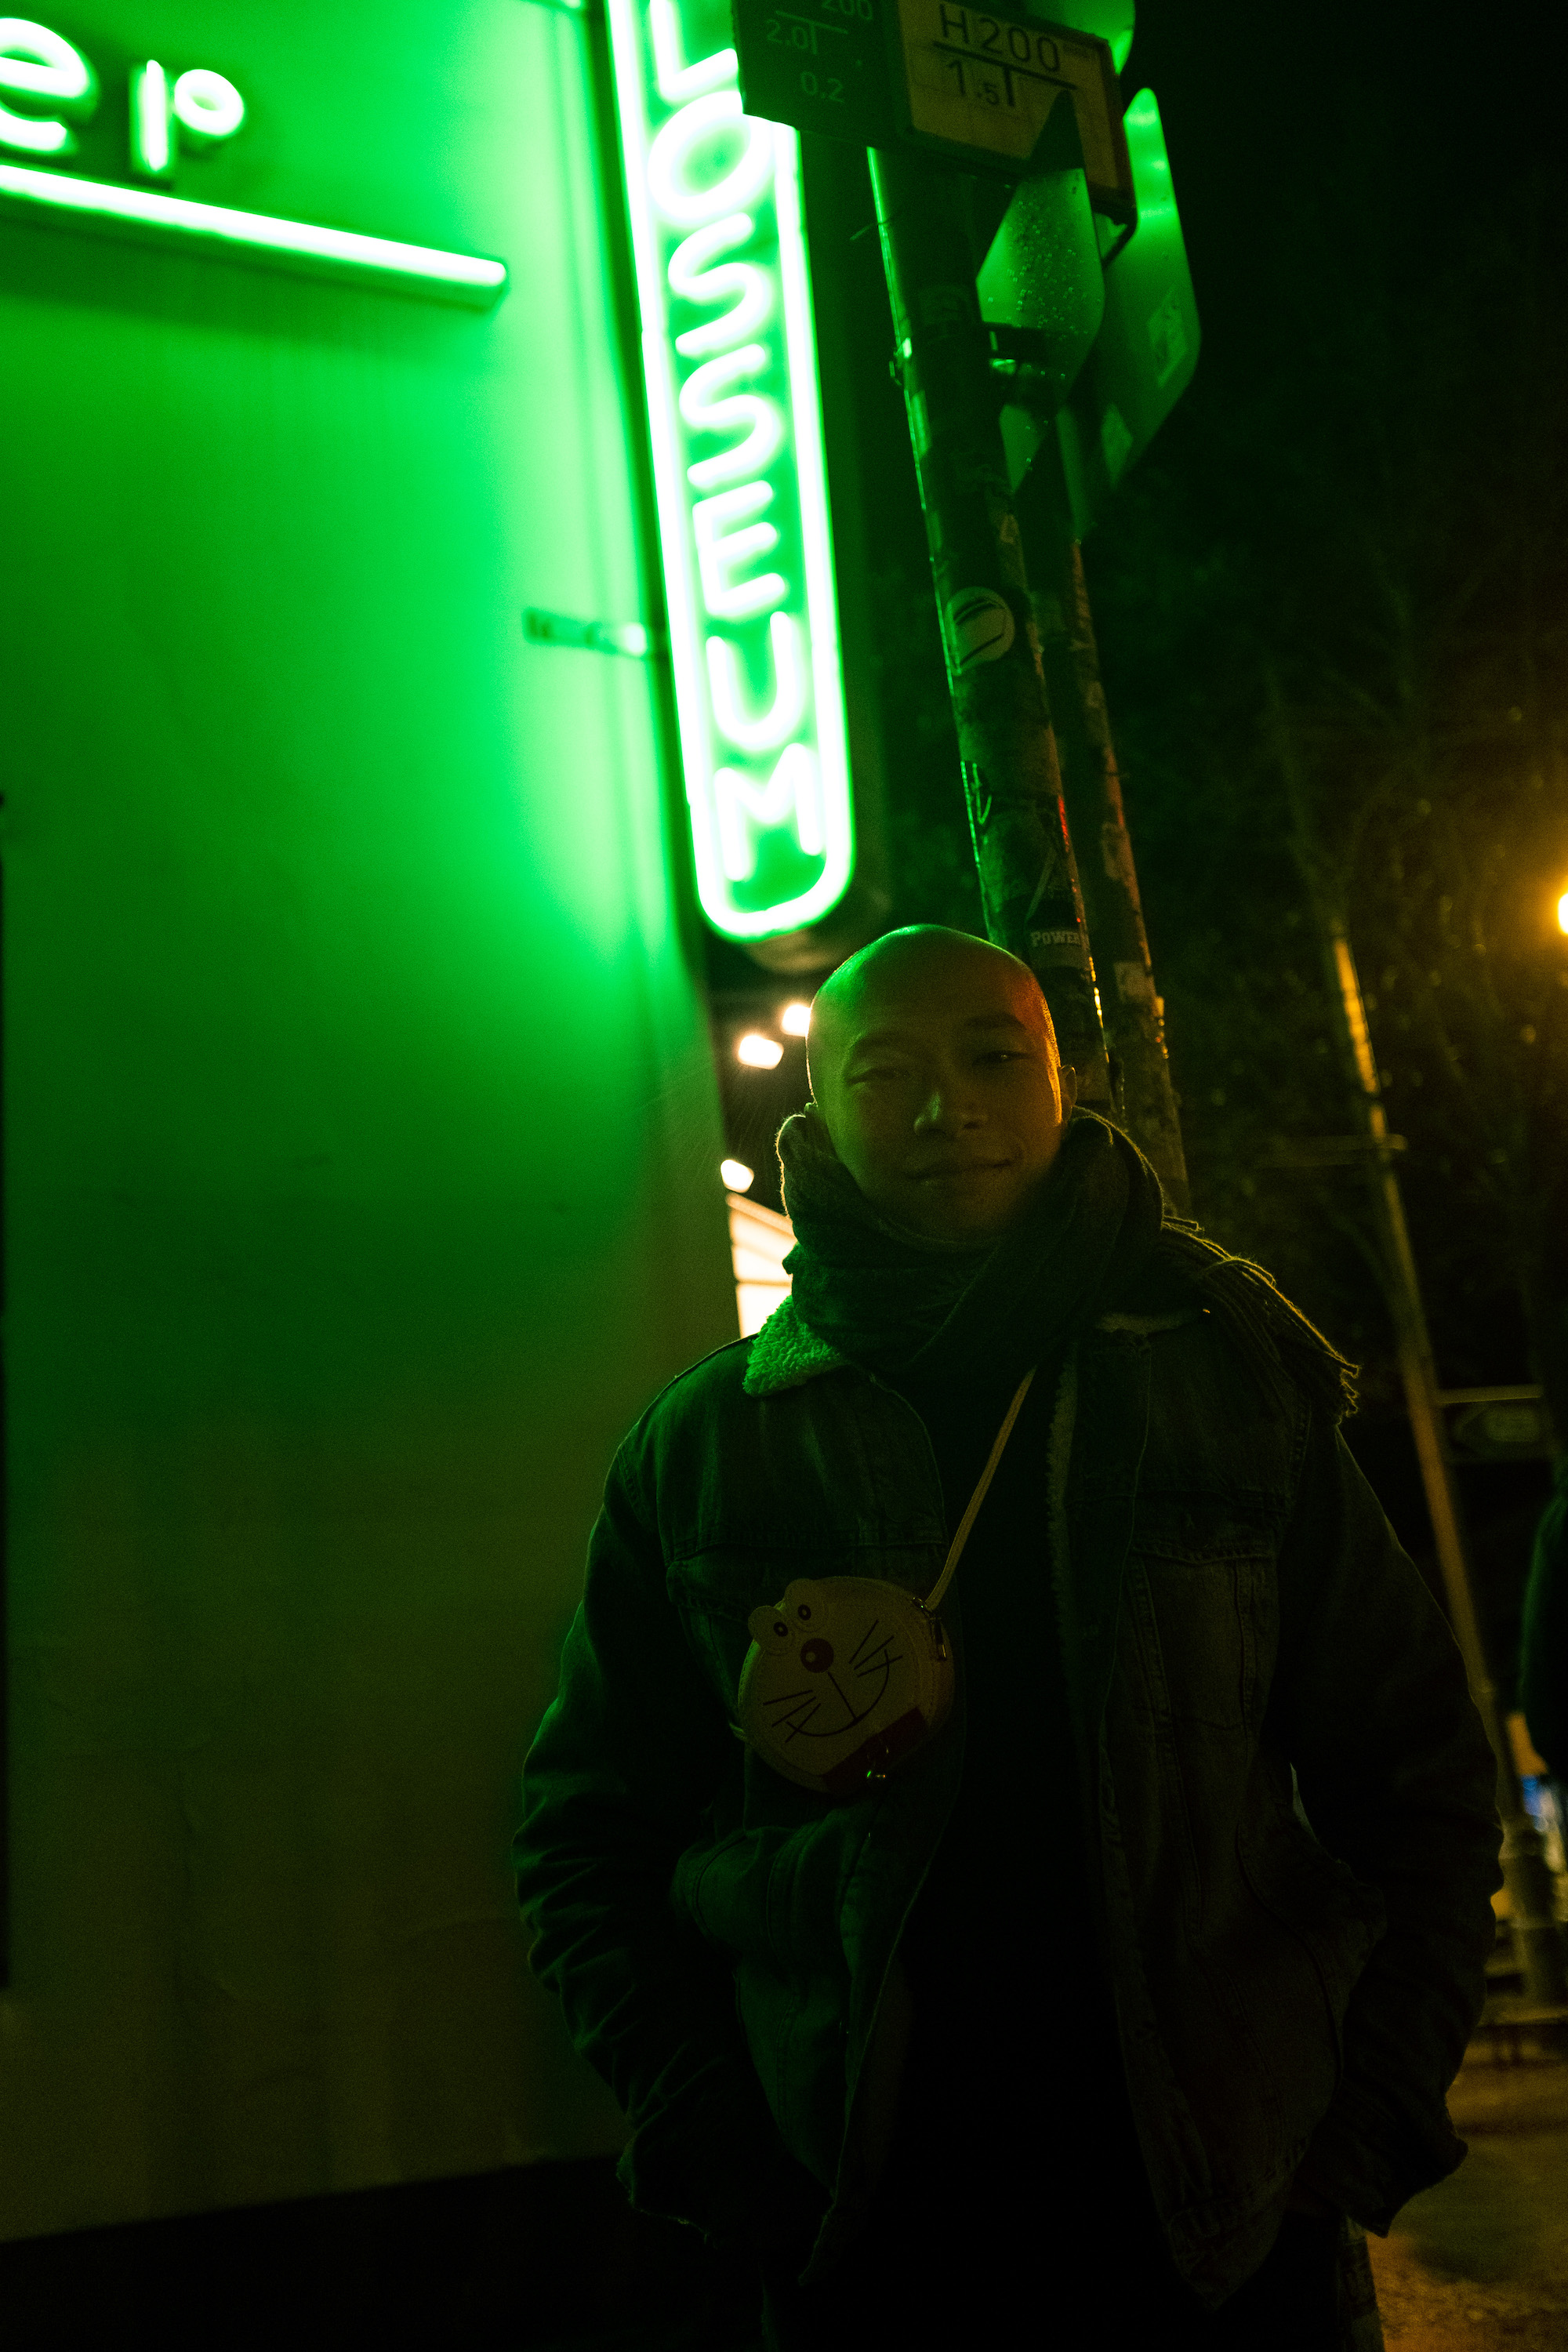 Cheong Kin Man With Neons Behind